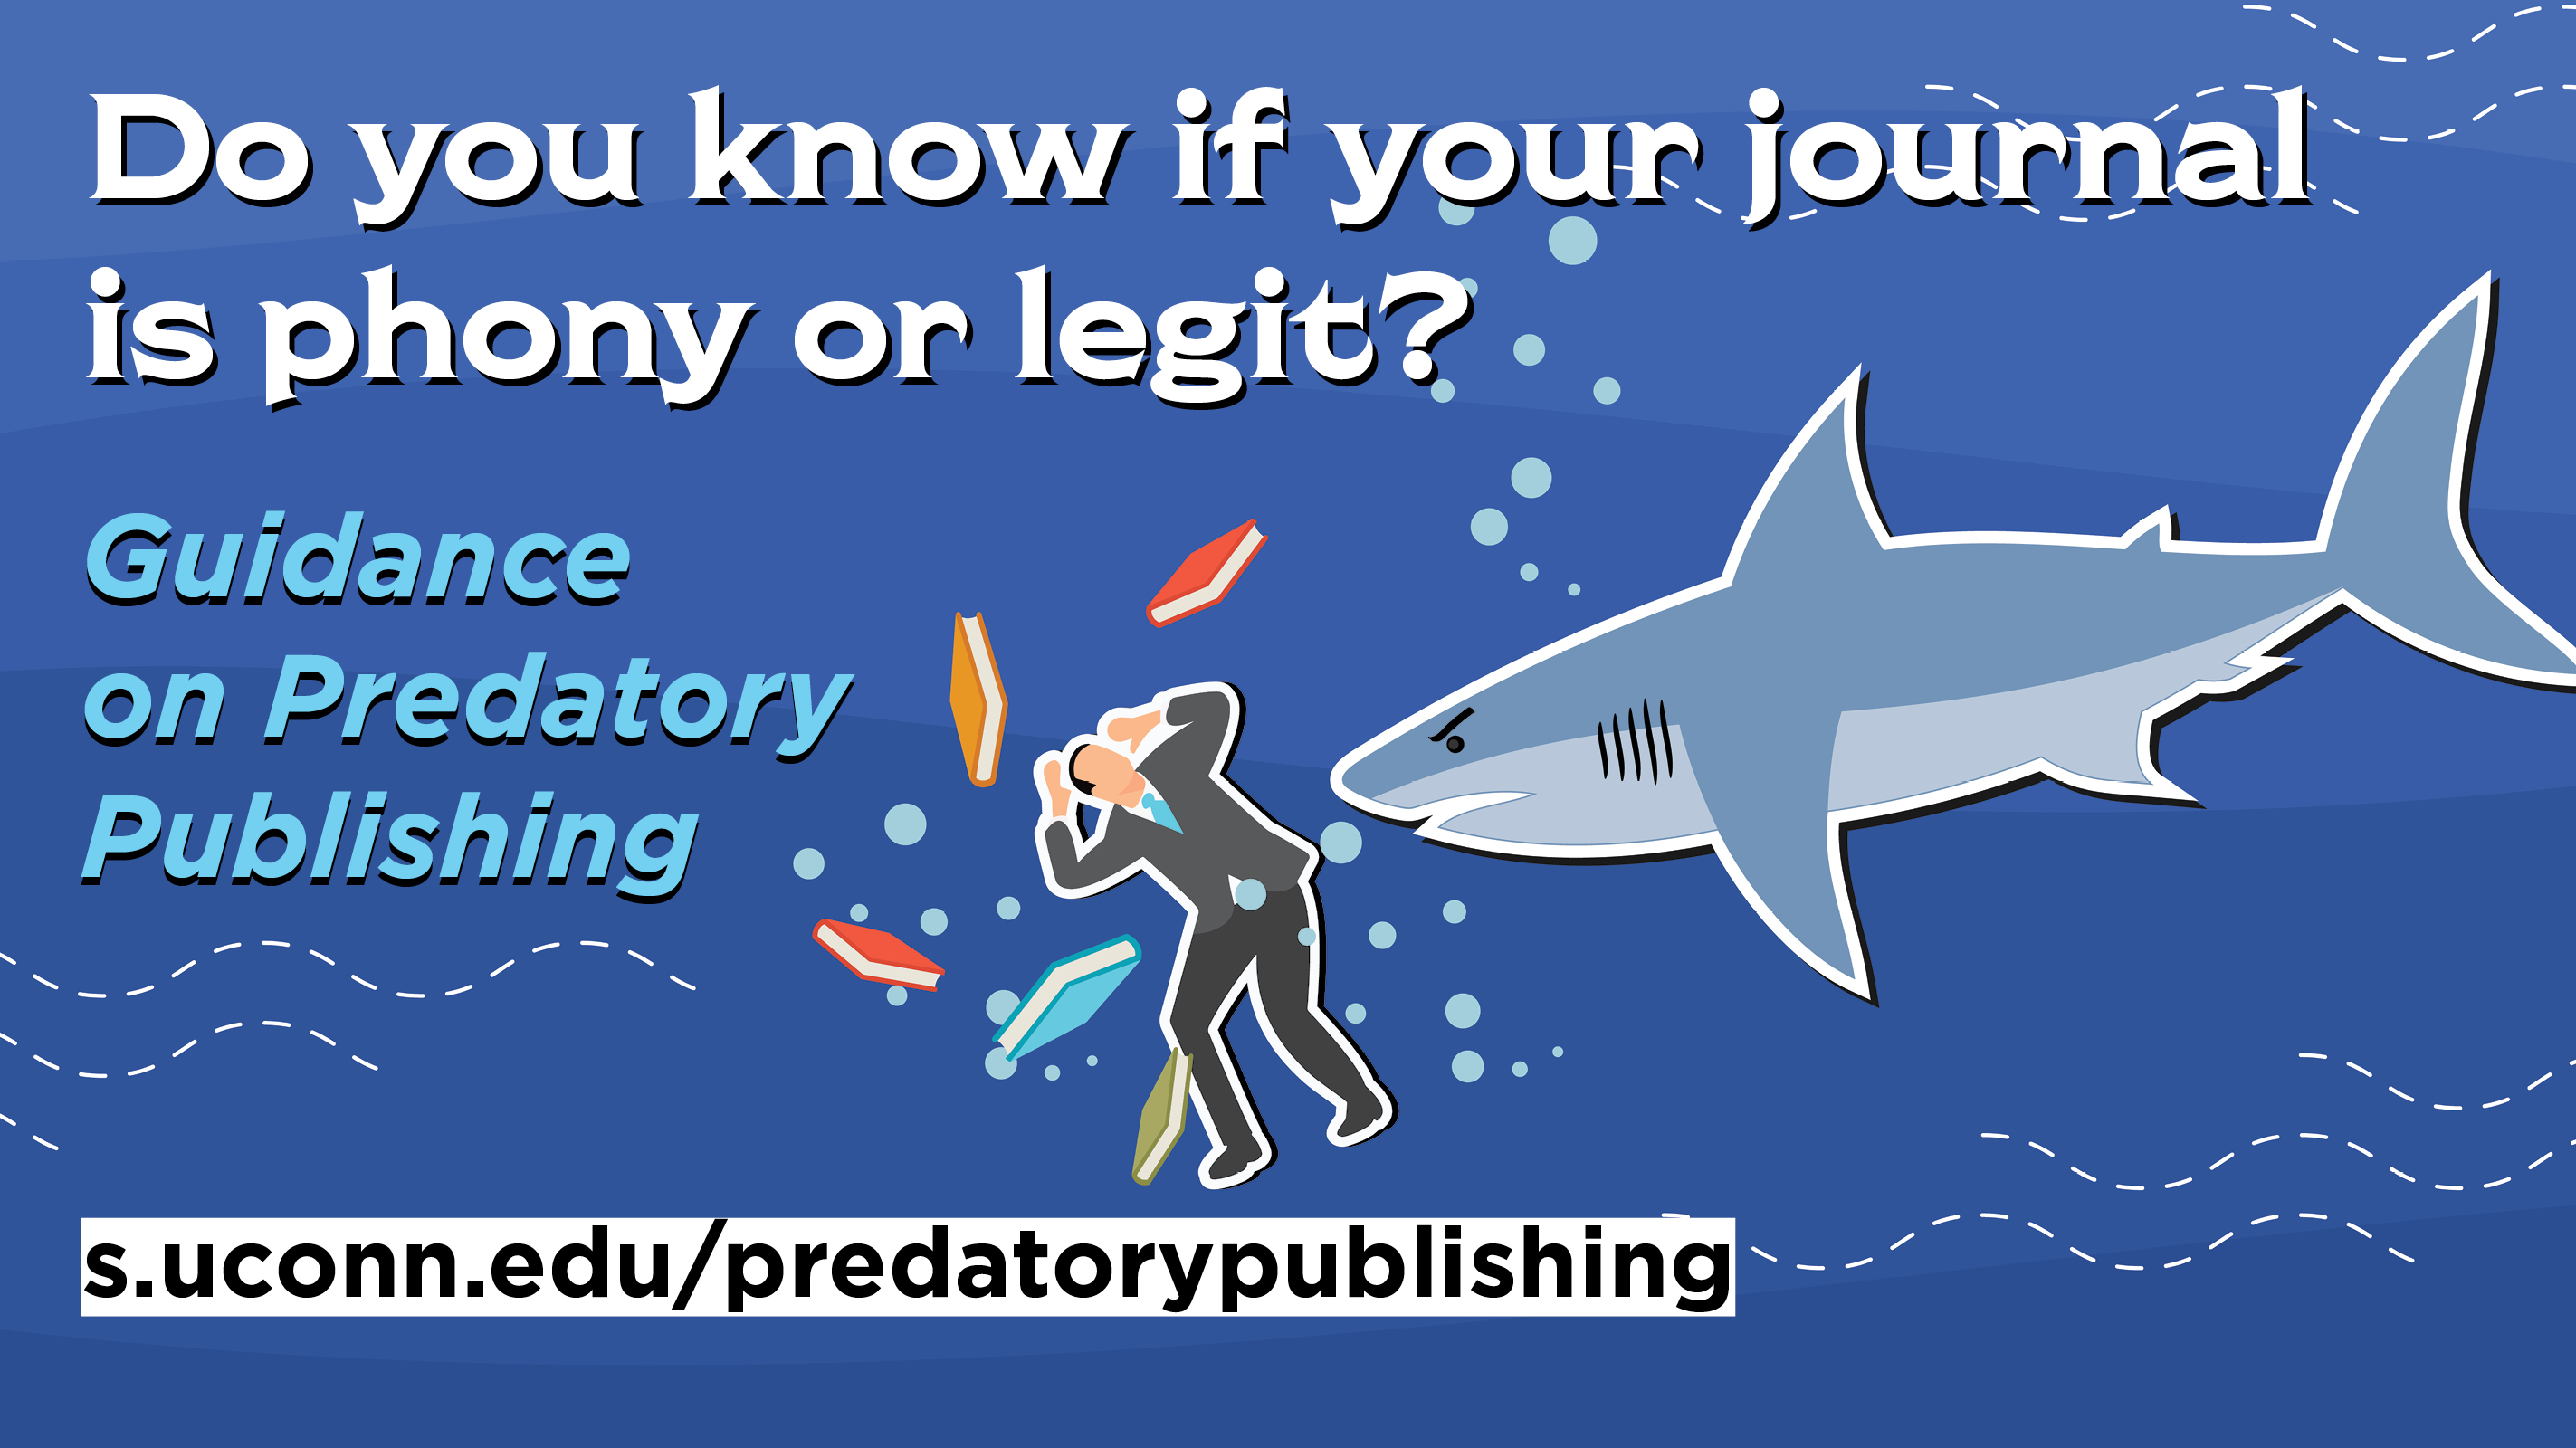 Do you now if your journal is phony or legit? Guidance on Predatory Publishing s.uconn.edu/predatorypublishing